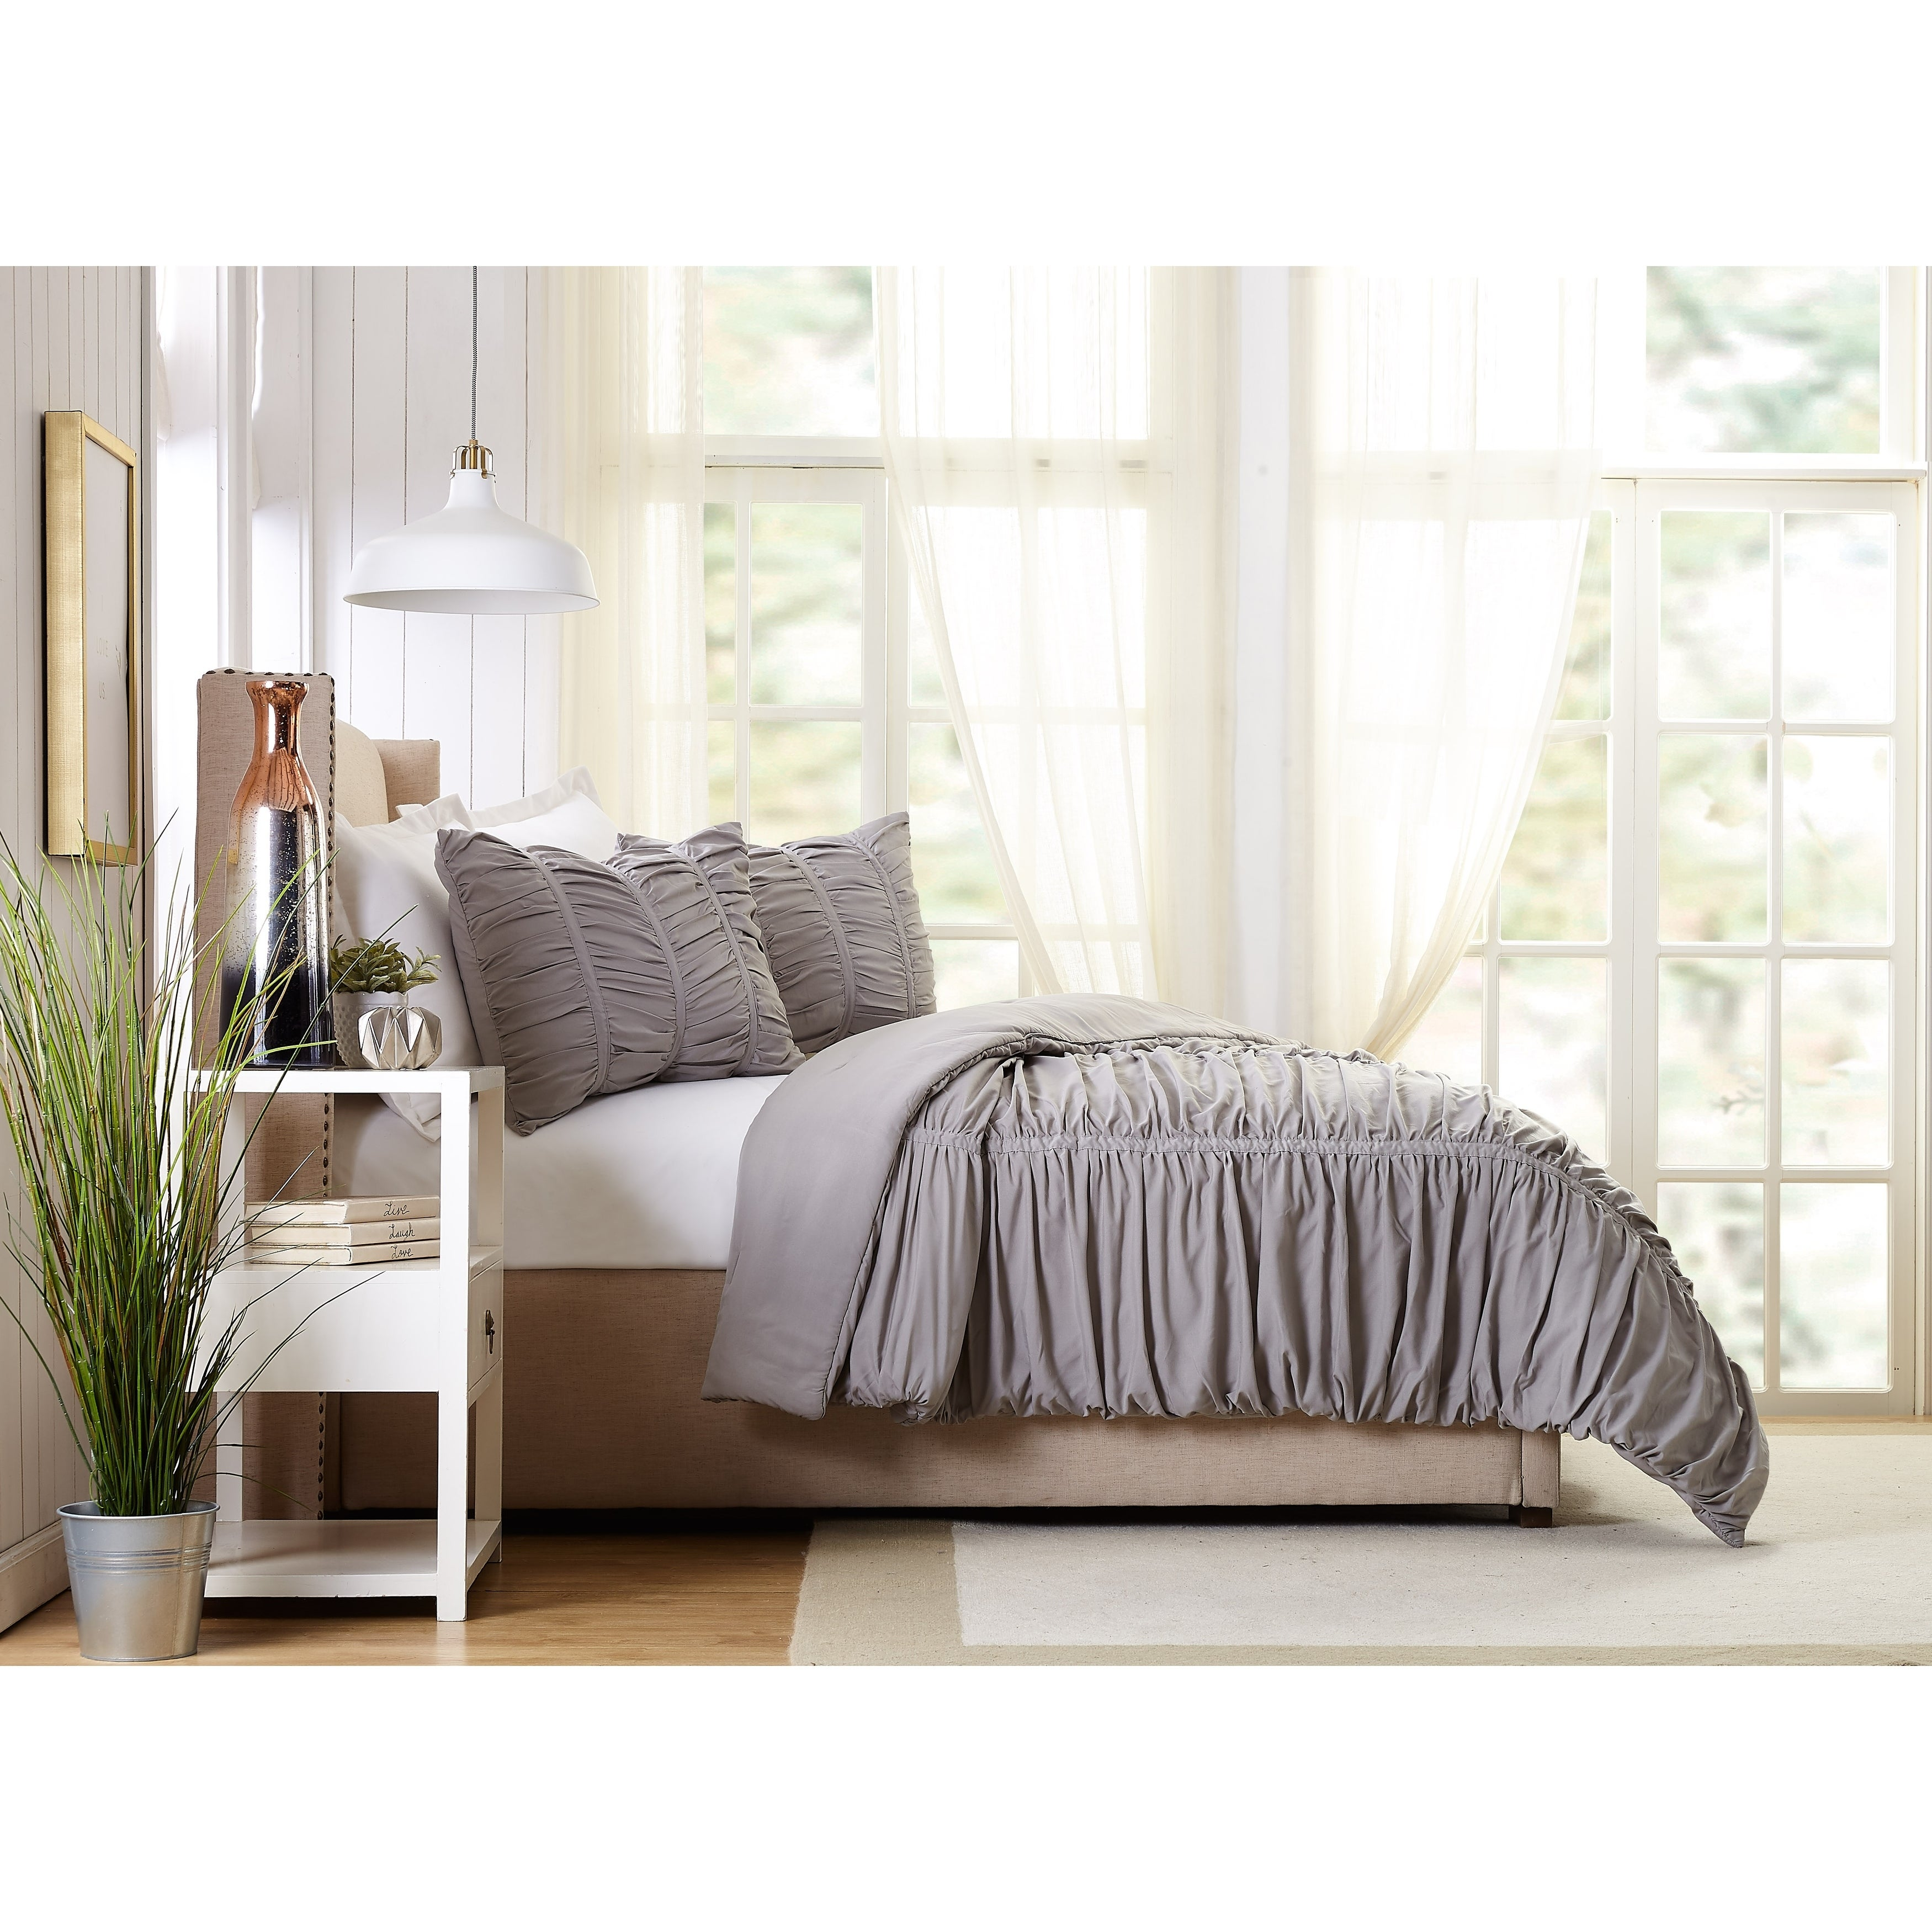 Emily Texture Twin Twin Xl Comforter Set Light Gray Overstock 28964196